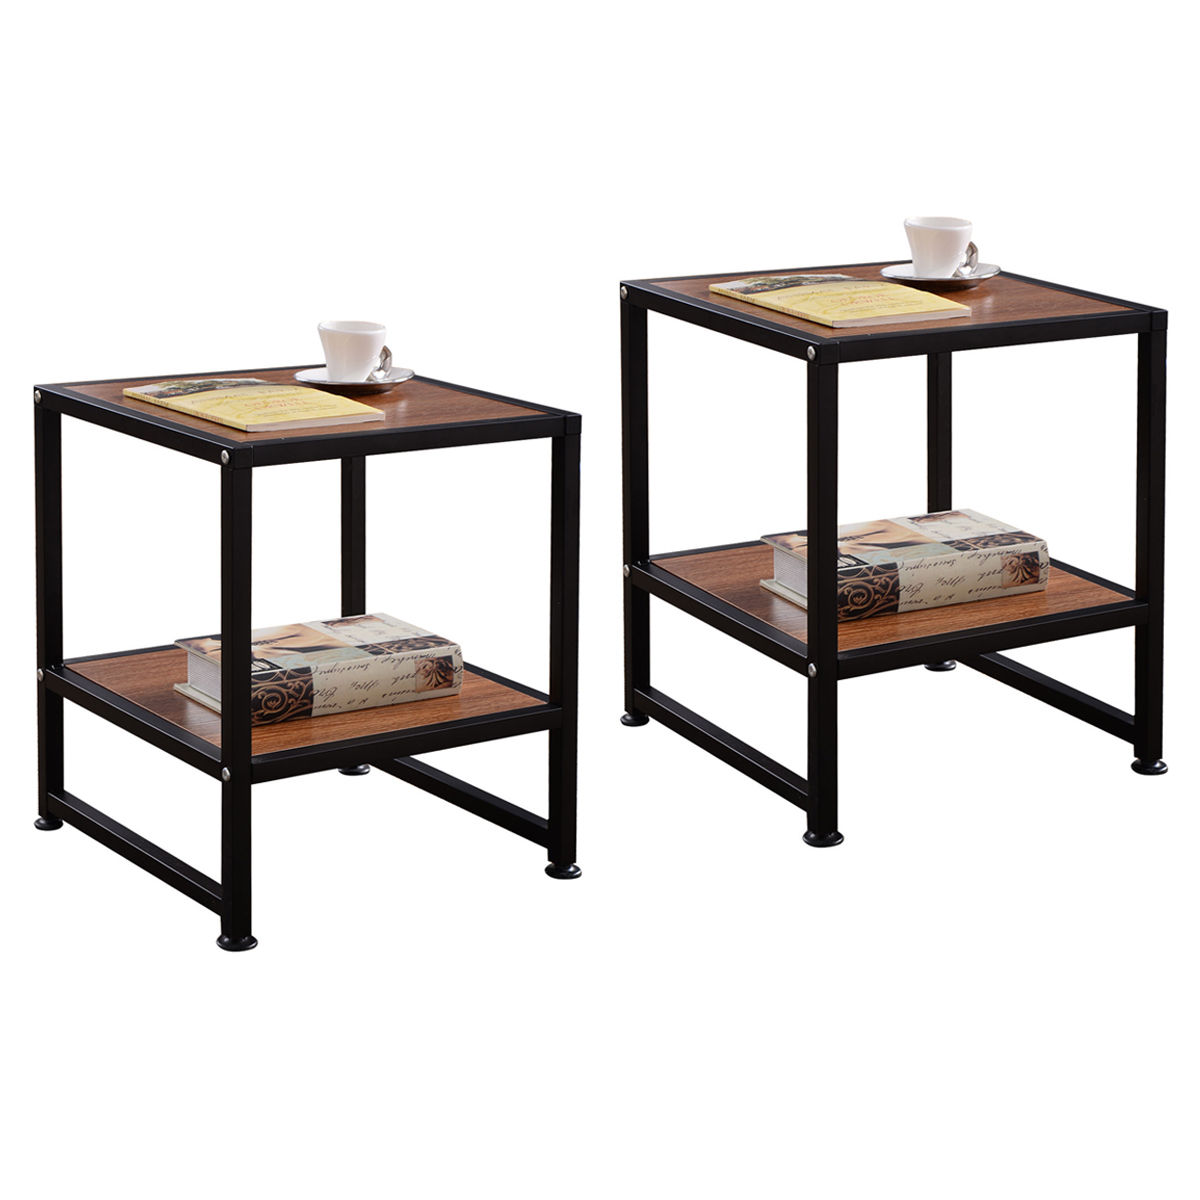 Giantex 2PCS End Table Living Room Side Sofa Square Coffee Tea Stand with Bottom Shelf Modern Wood Coffee Tables HW54146